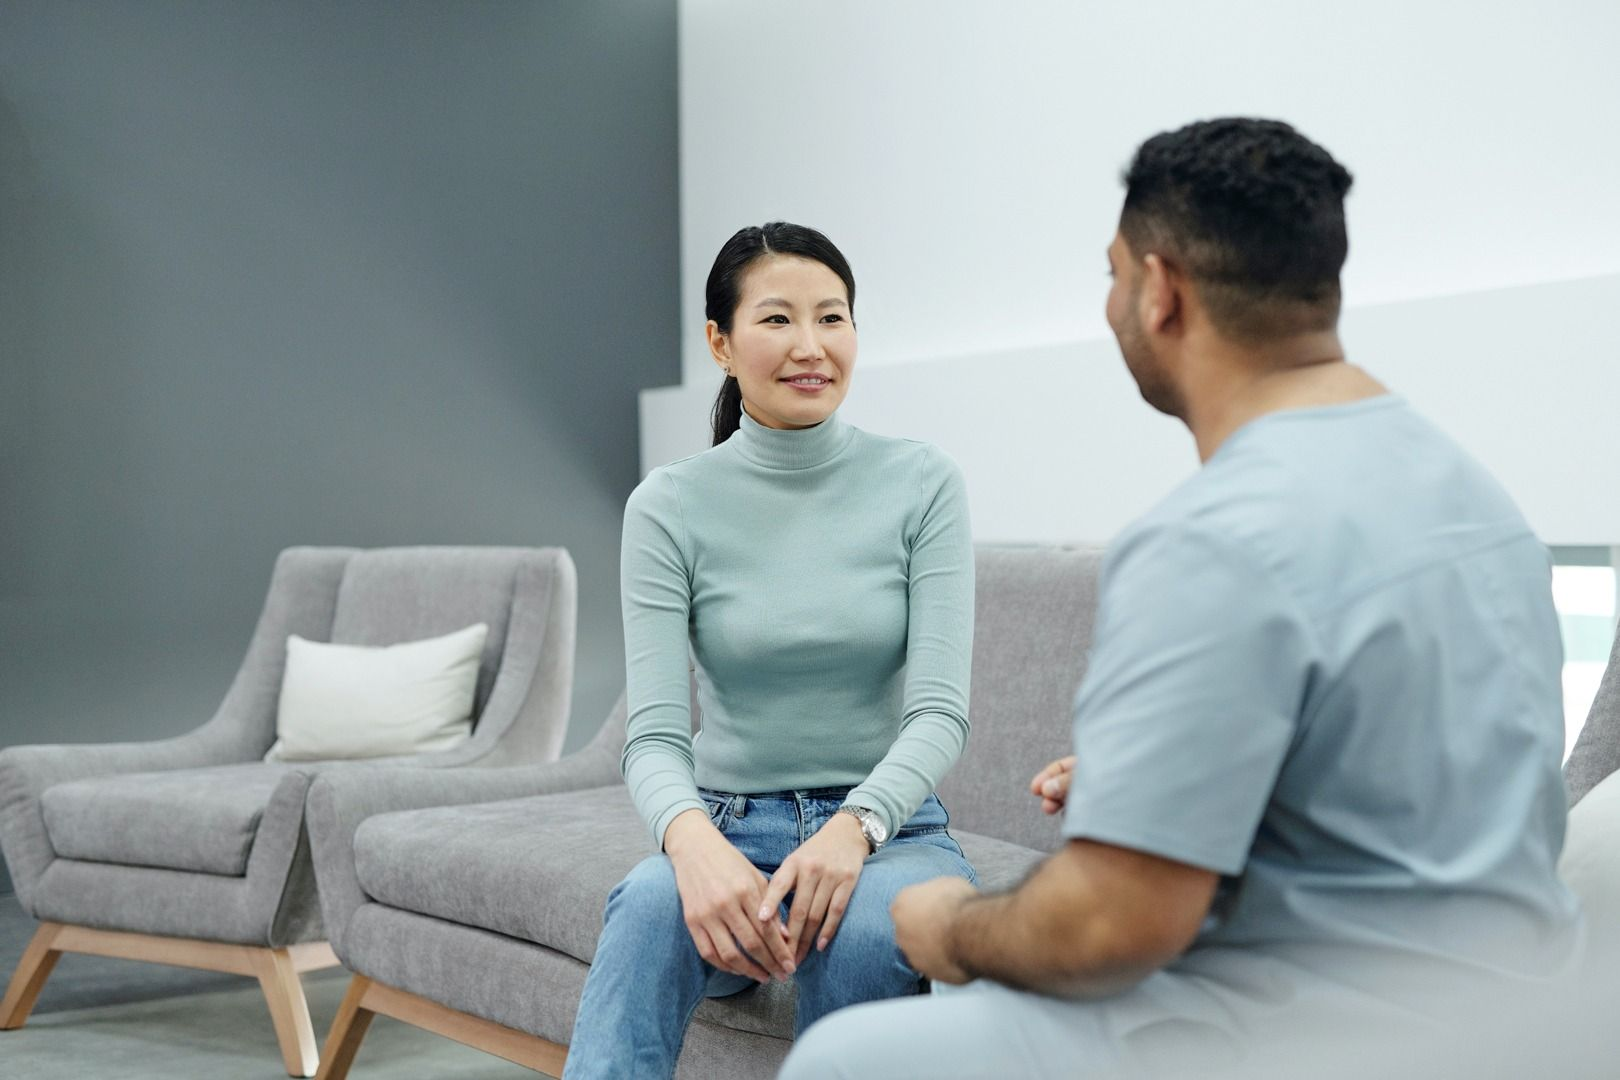 How communication with the patient impacts the healing process